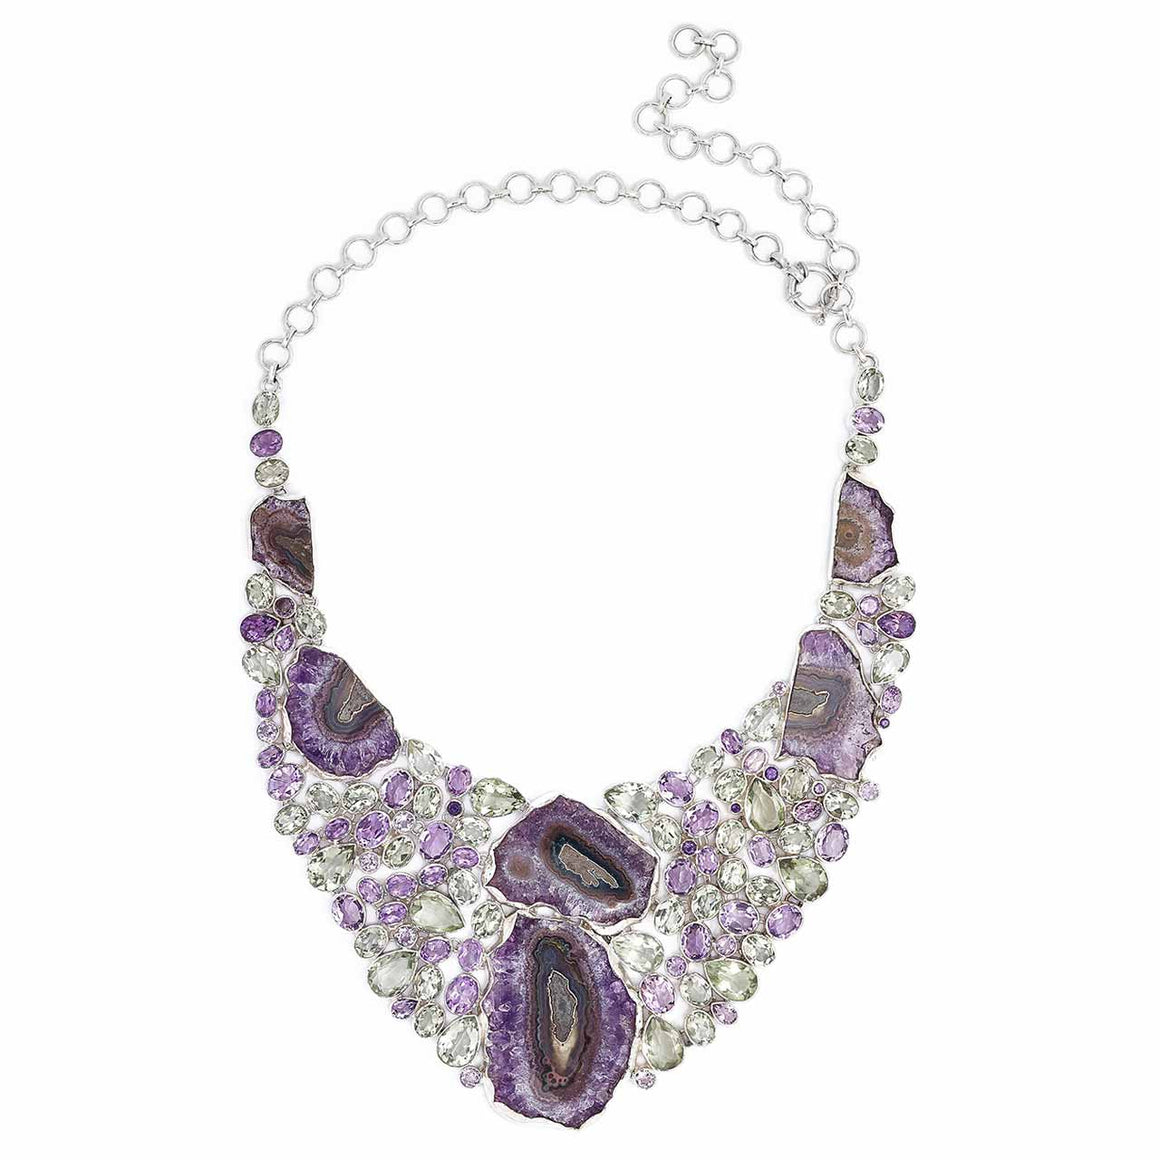 Amethyst Geode, Amethyst and Green Amethyst Gemstone Necklace